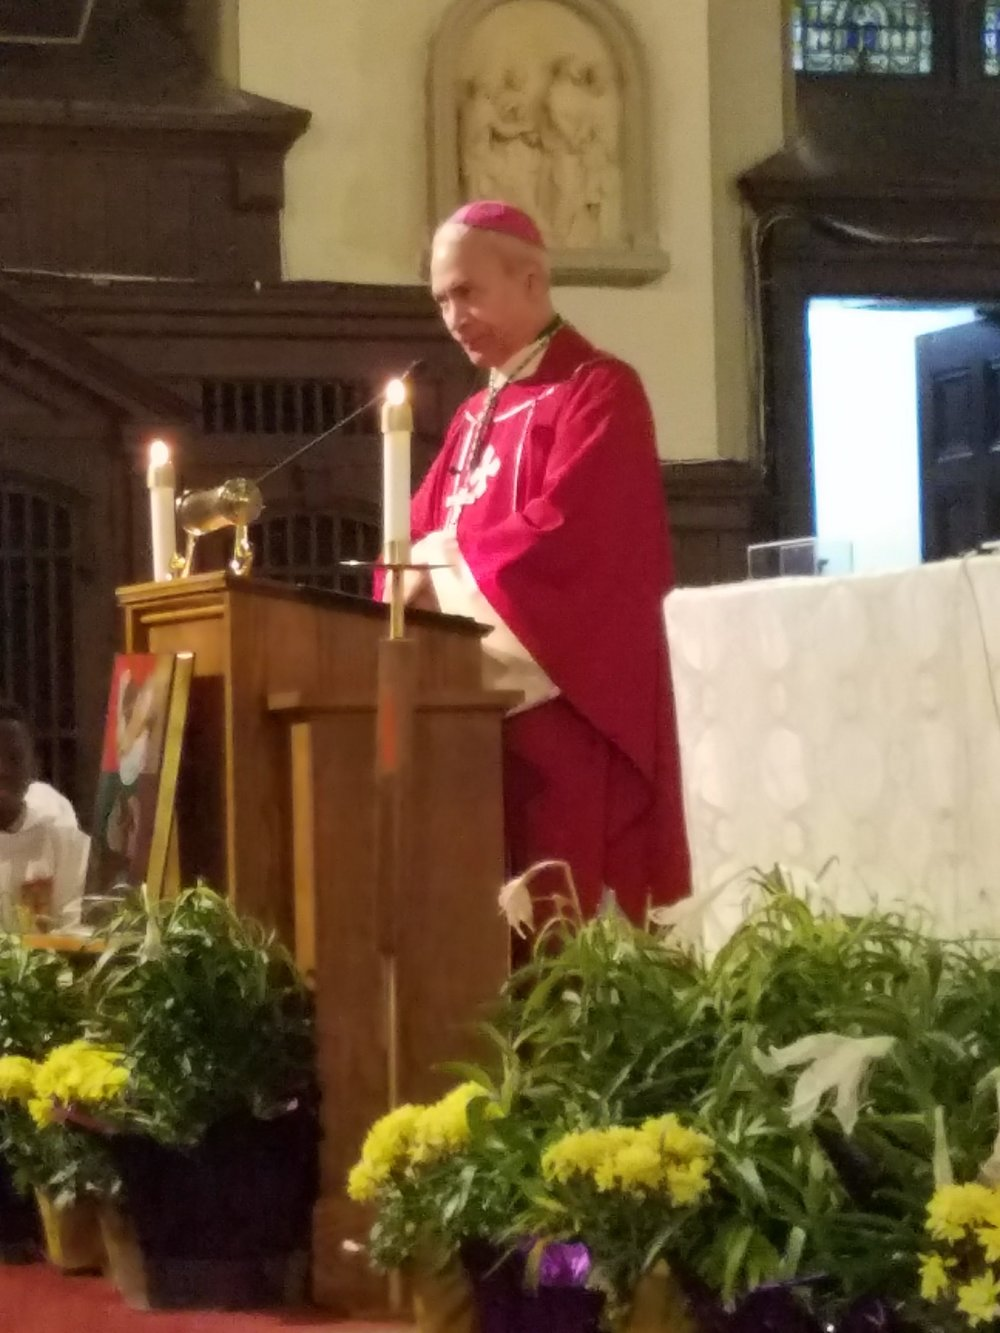 Bishop John Ricard retired Bishop of Pensacola-Talahassee, and former urban vicar of Baltimore